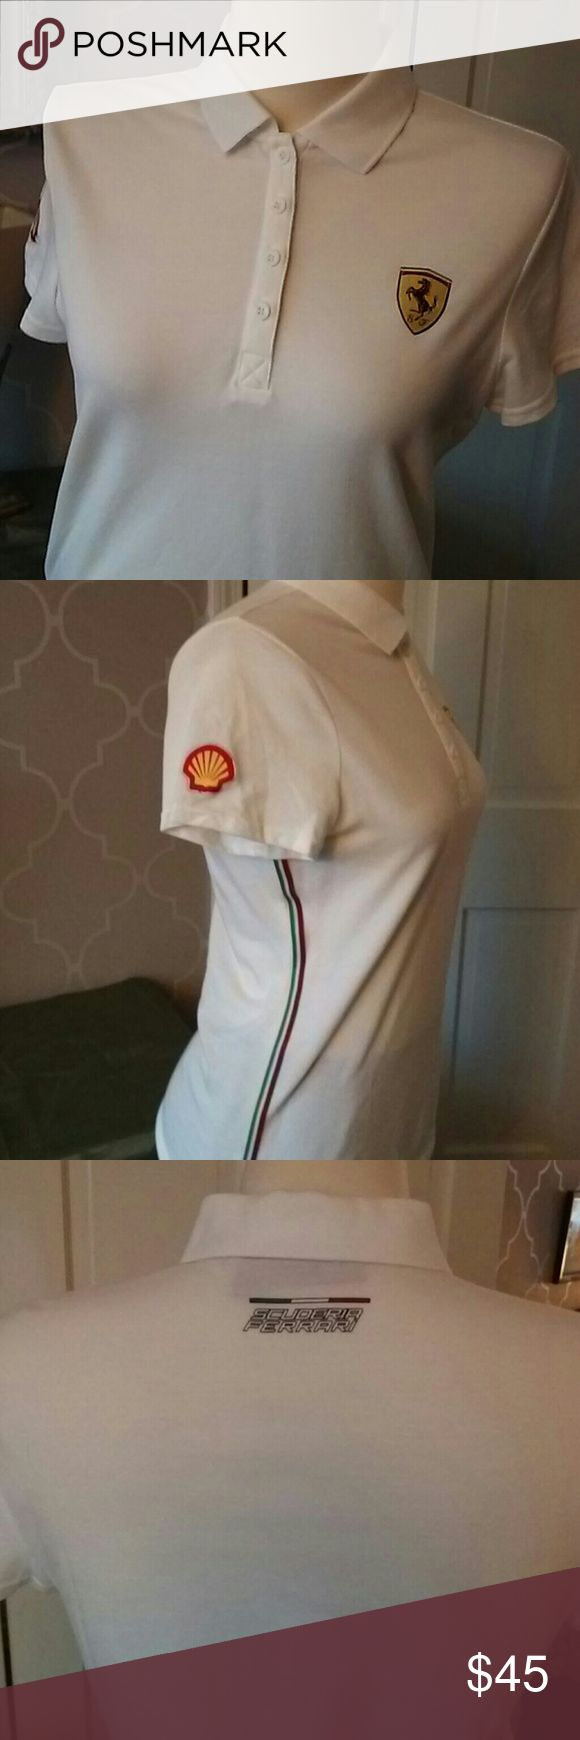 Scuderia Ferrari racing ladies Polo shirt Never worn, white Scuderia Ferrari Racing ladies Polo shirt. Size large but more like a medium, from a smoke free home Tops Tees - Short Sleeve